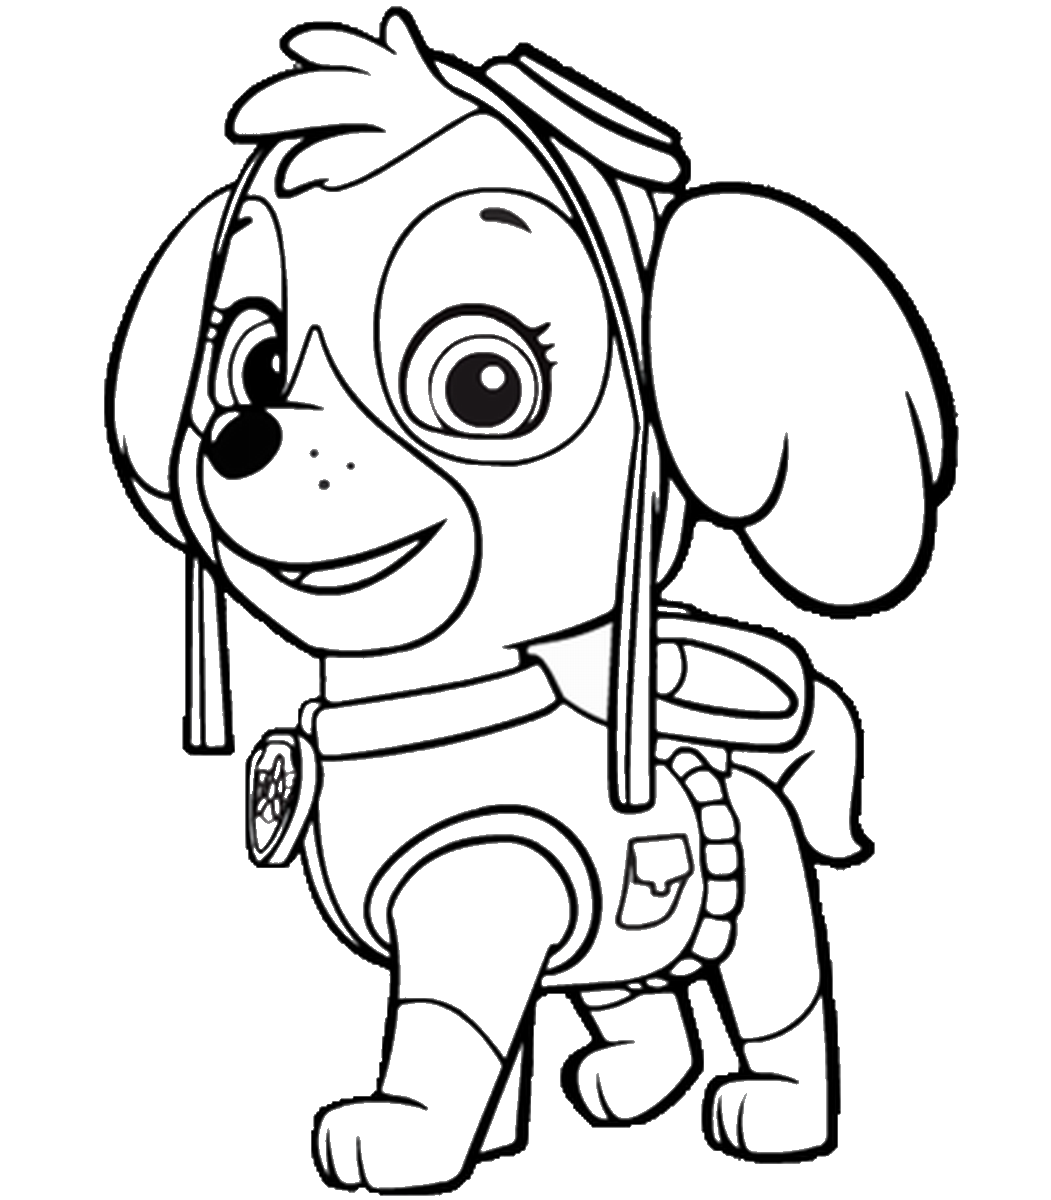 paw patrol coloring book 1000 images about baileys party ideas on pinterest paw coloring book patrol paw